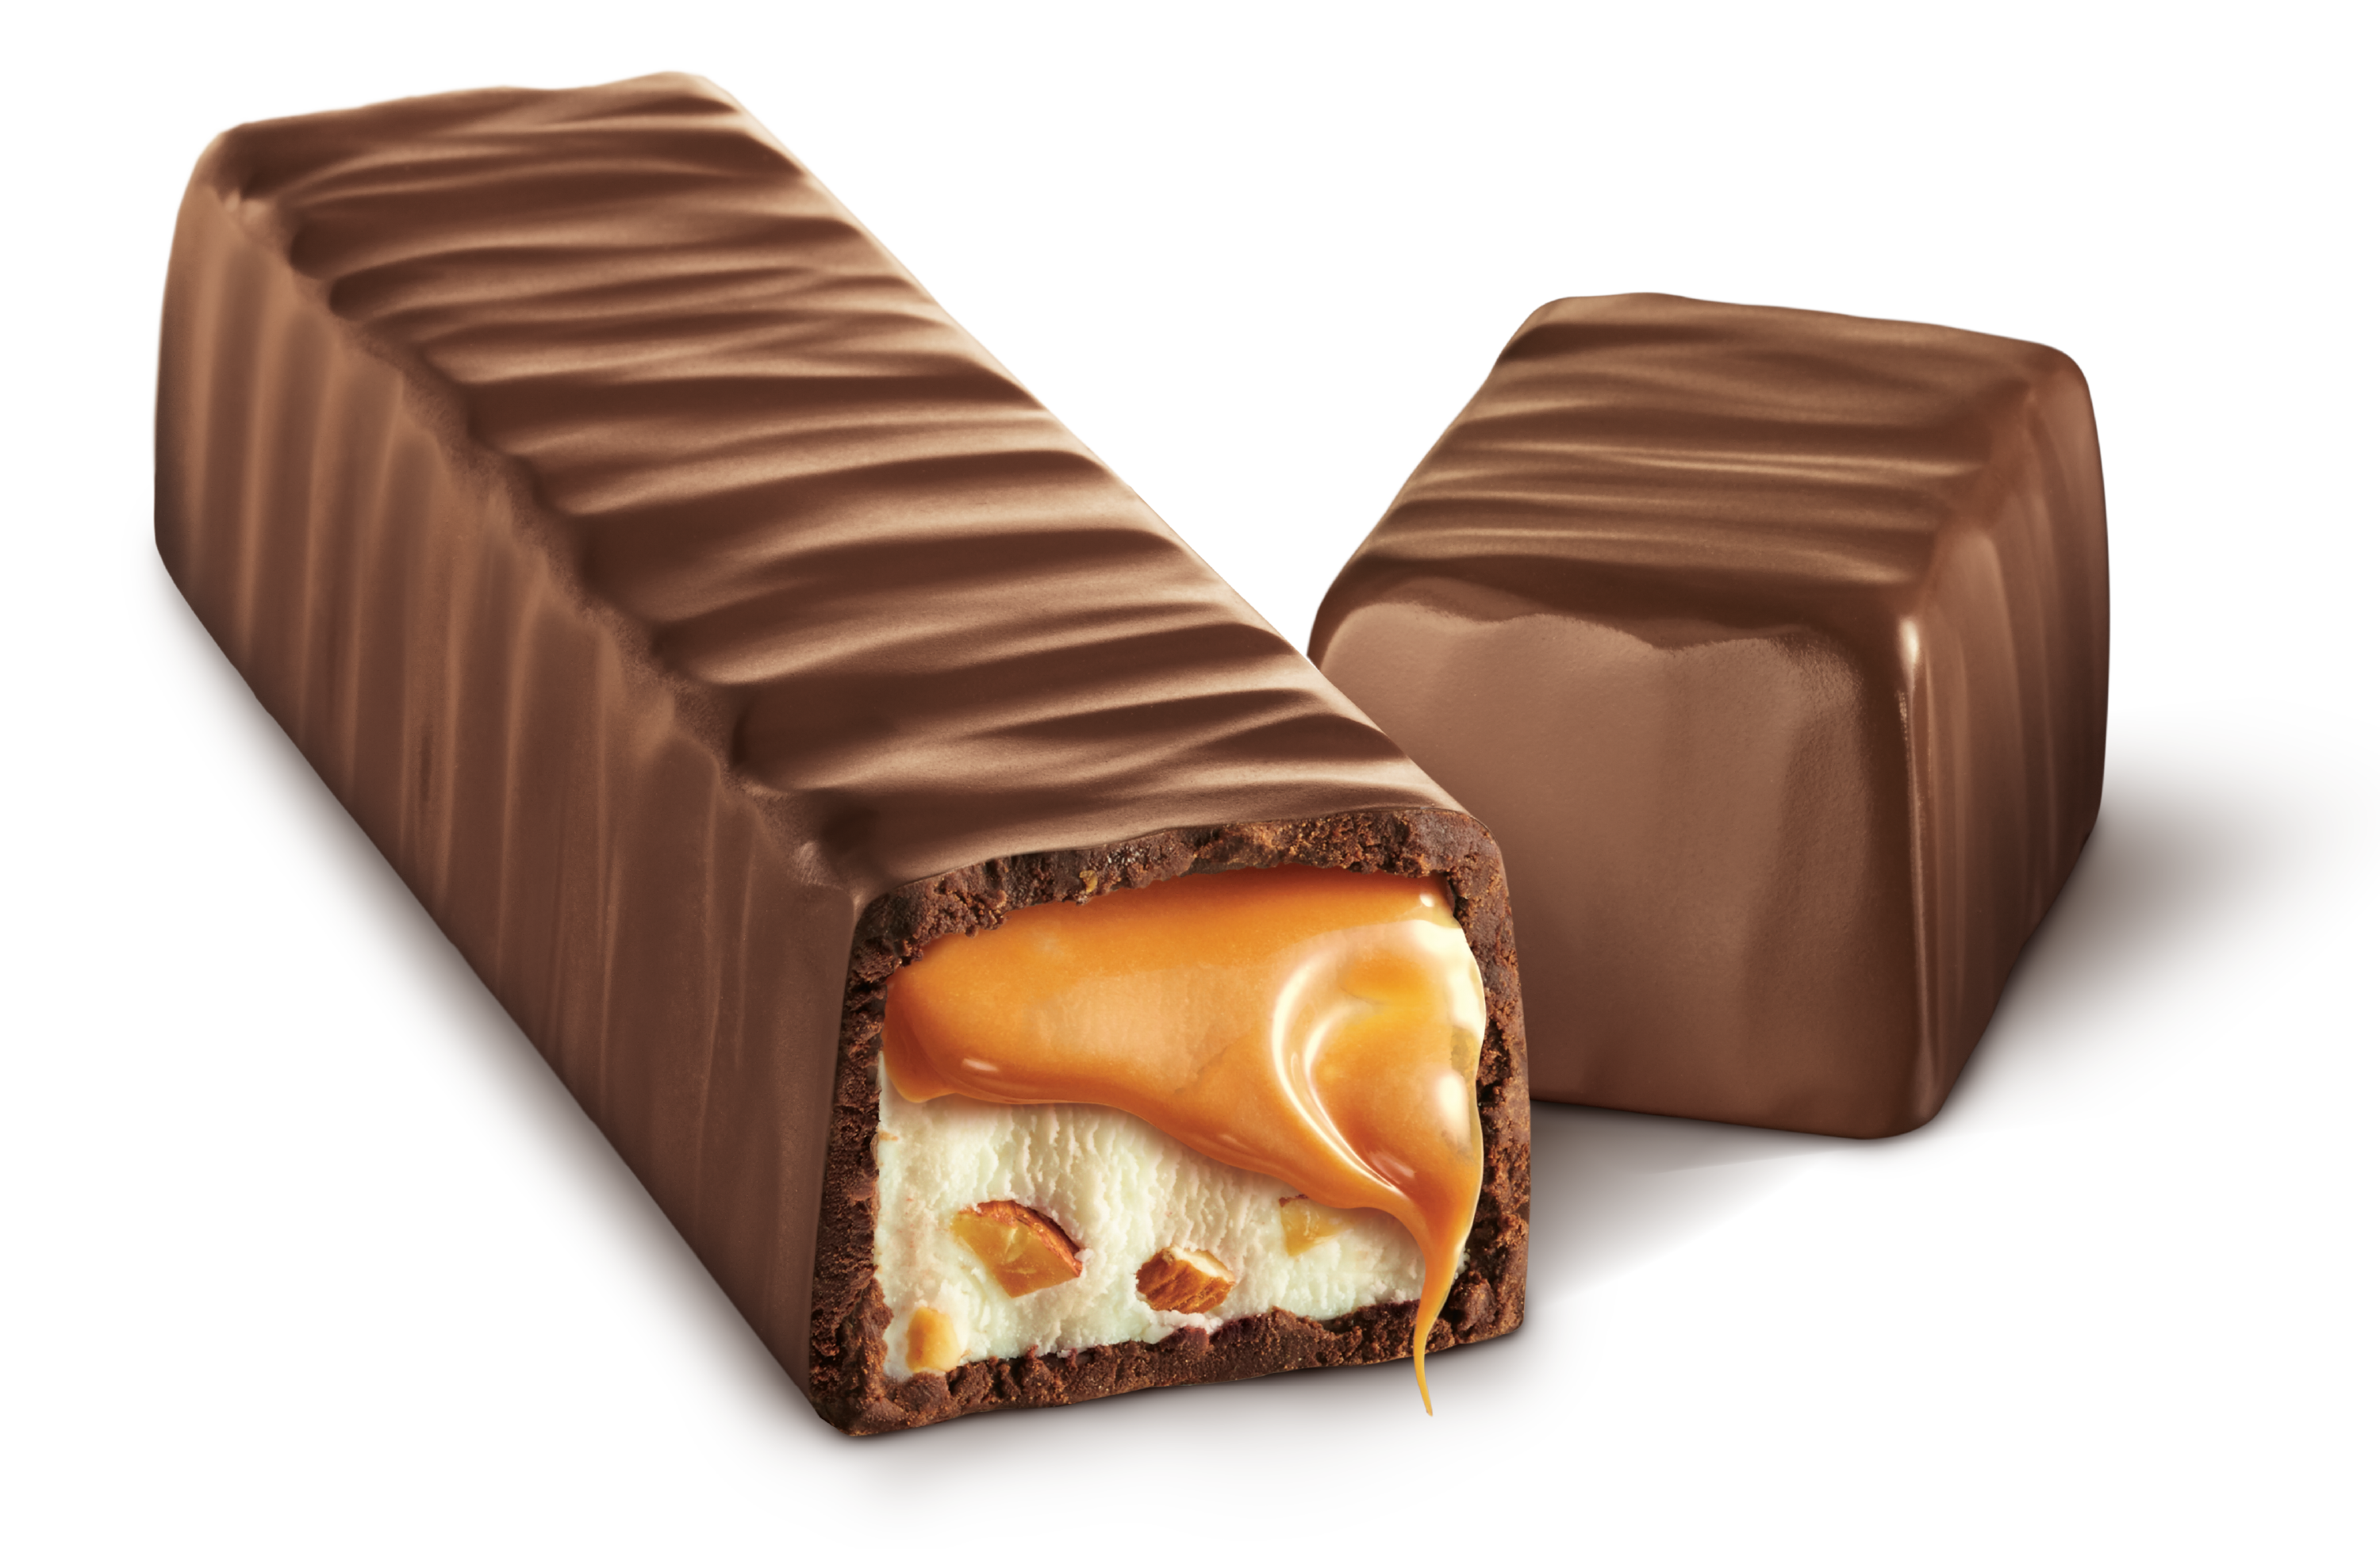 Png chocolate. Bar hd transparent images